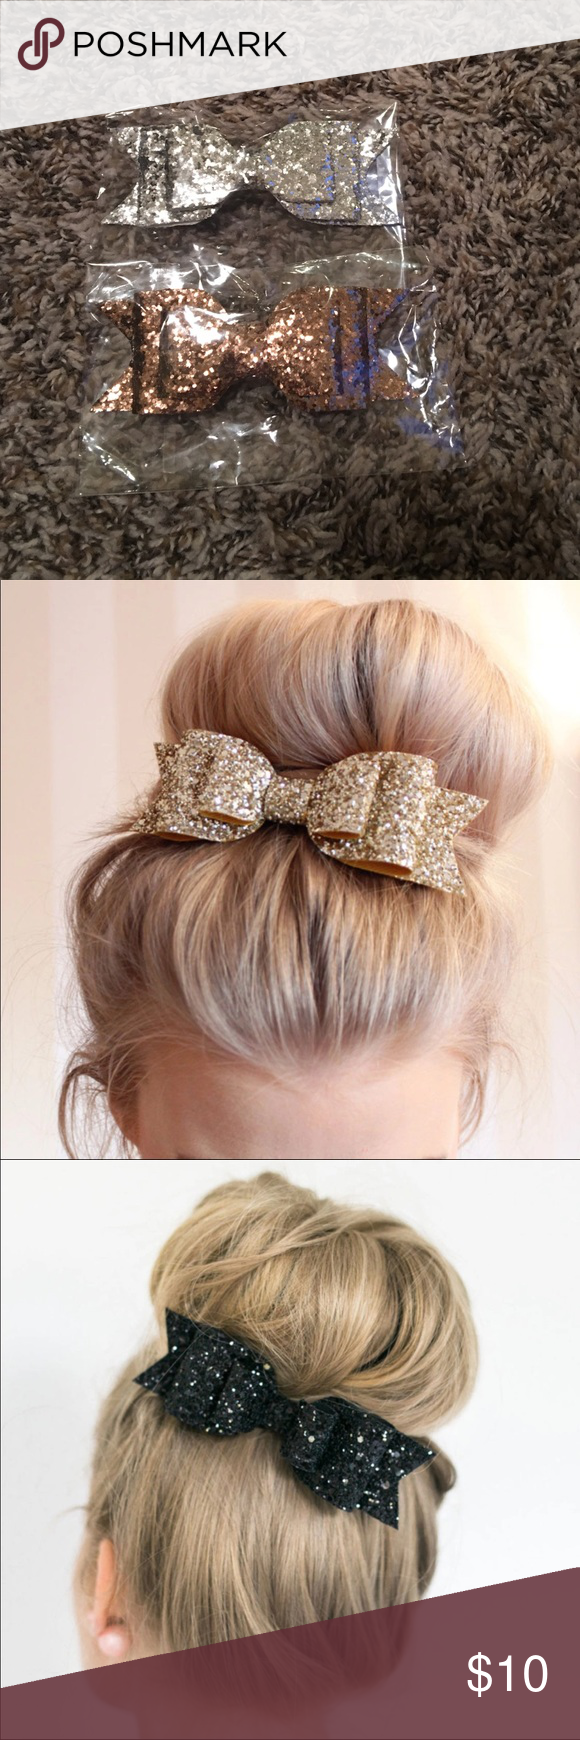 Darling hair bows boutique bow accessories hair bow and hair